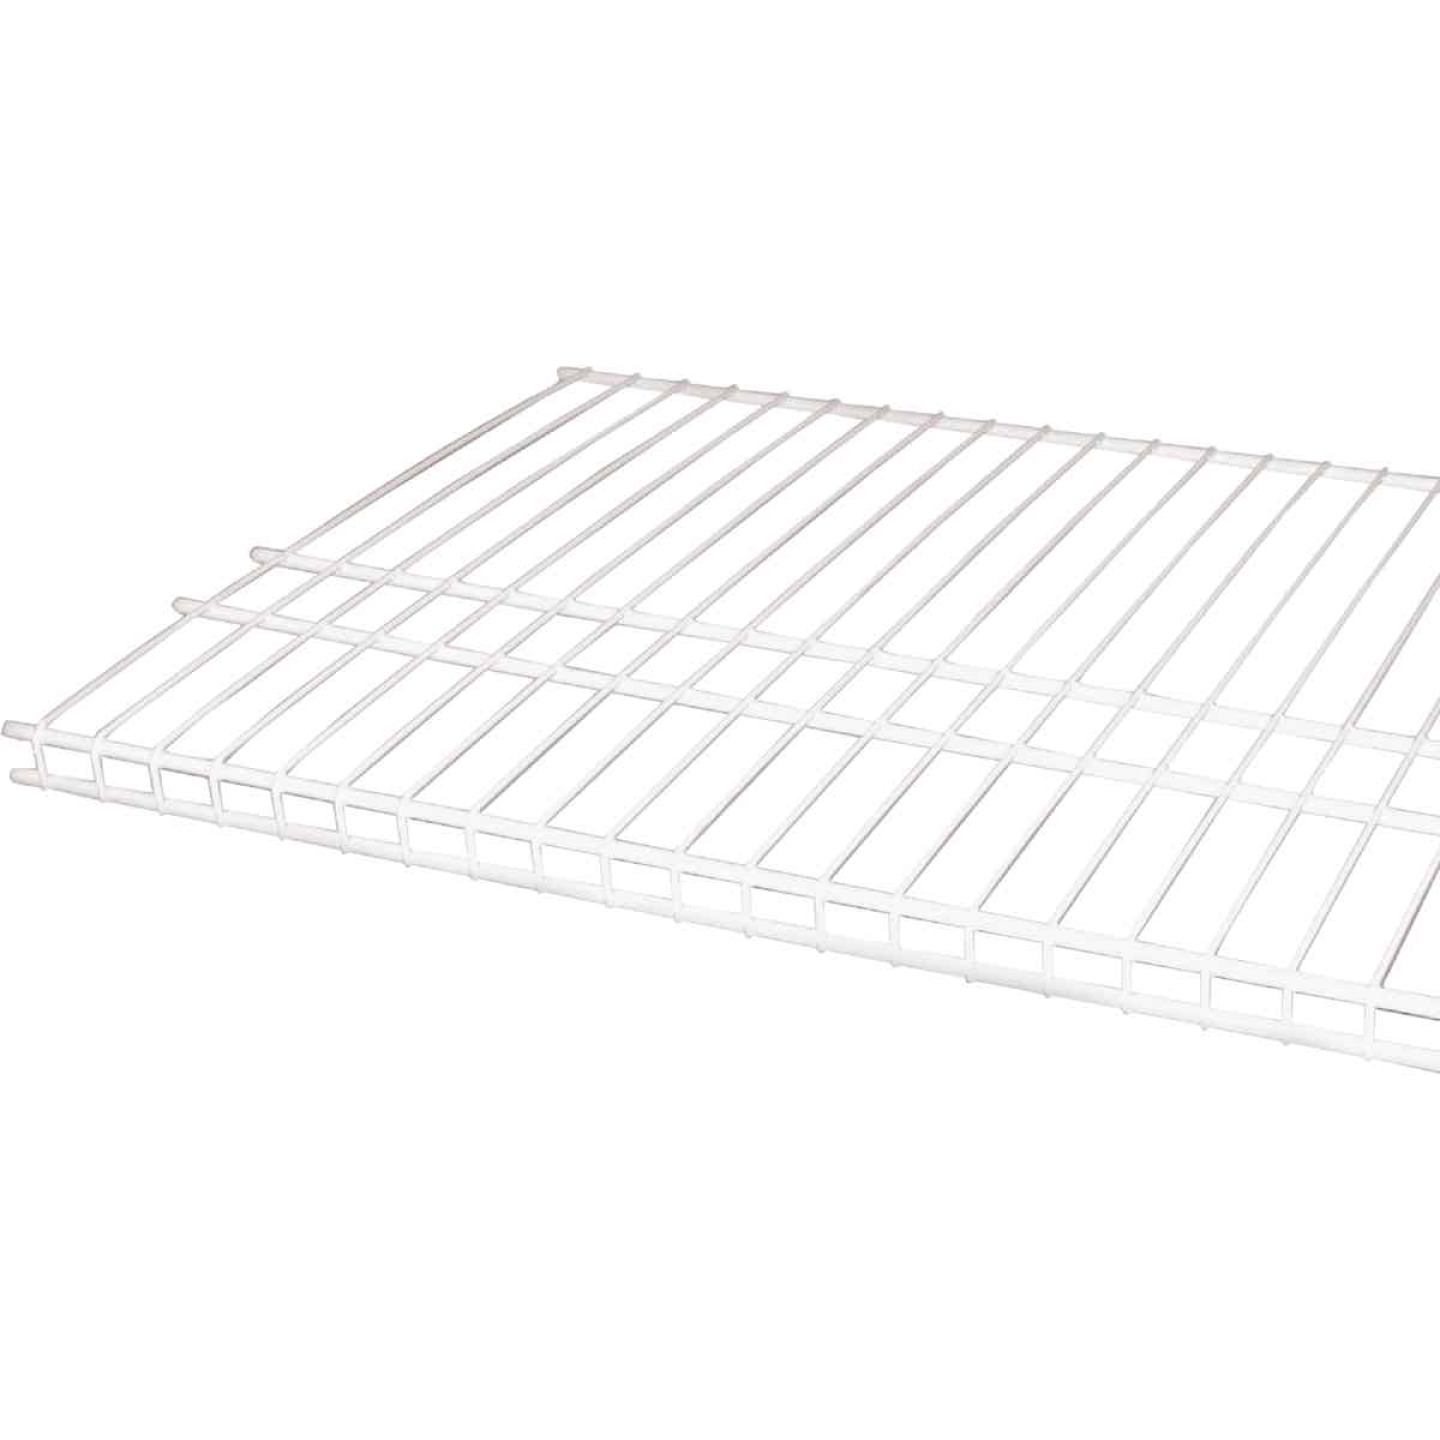 ClosetMaid SuperSlide 6 Ft. W. x 16 In. D. Ventilated Closet Shelf, White Image 3